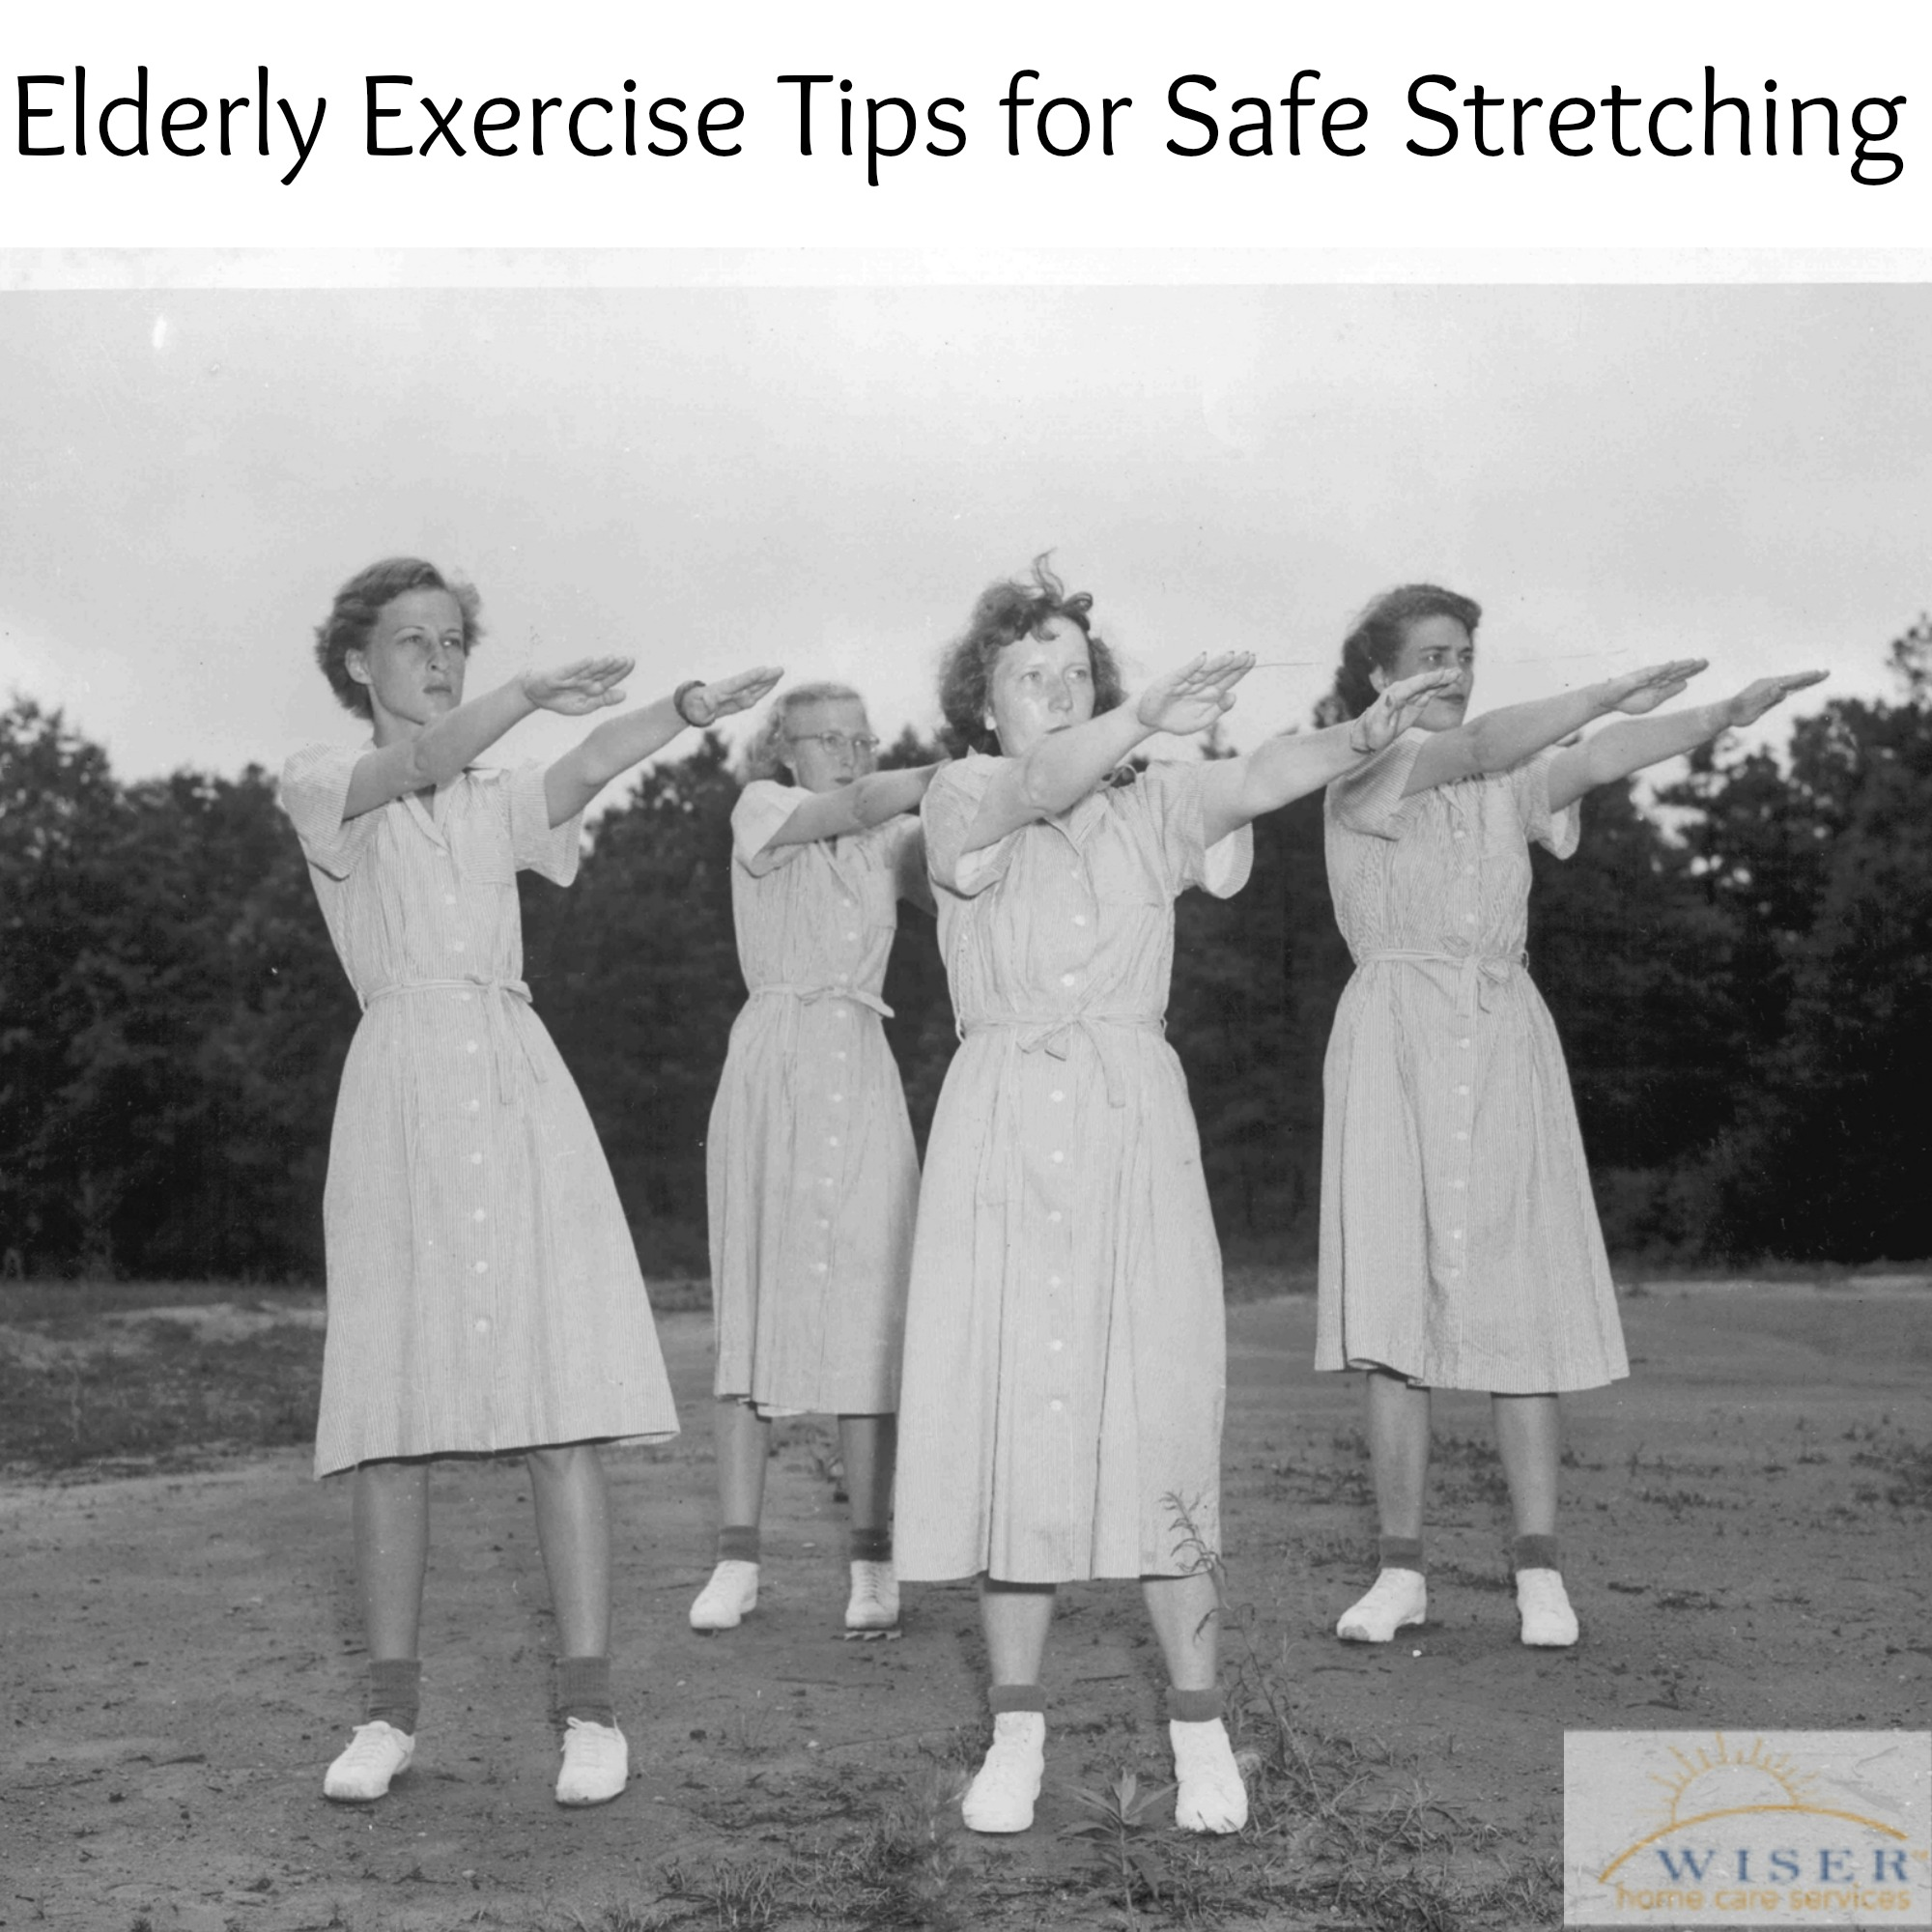 Tips and information on the importance of exercise for elderly loved ones, focusing on stretching as a means for increasing and maintaining mobility.